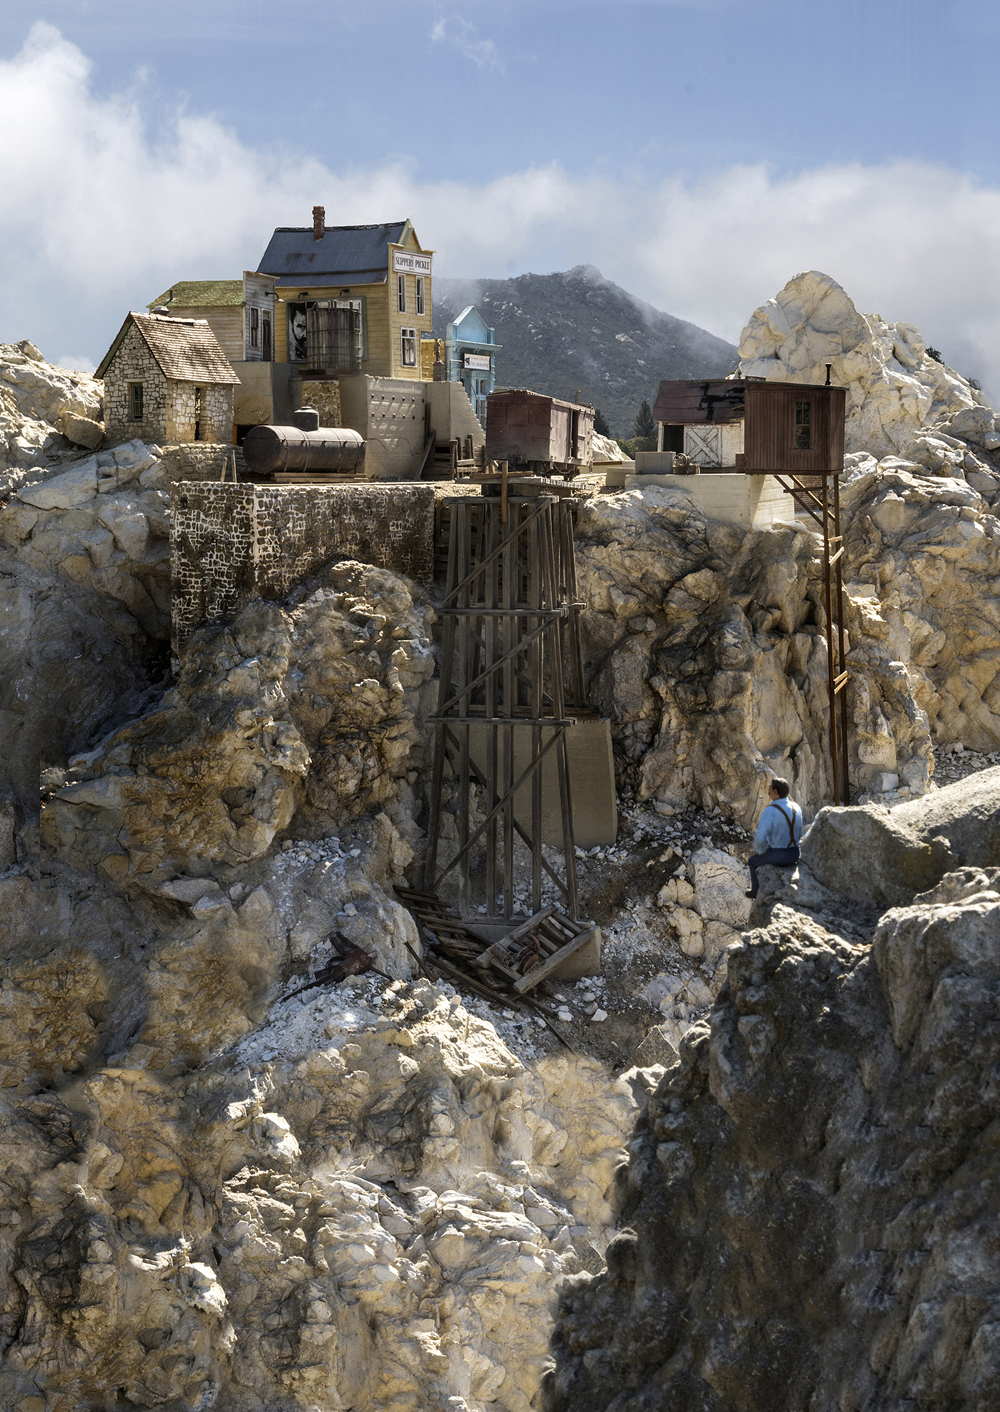 A model town on a rocky outcropping